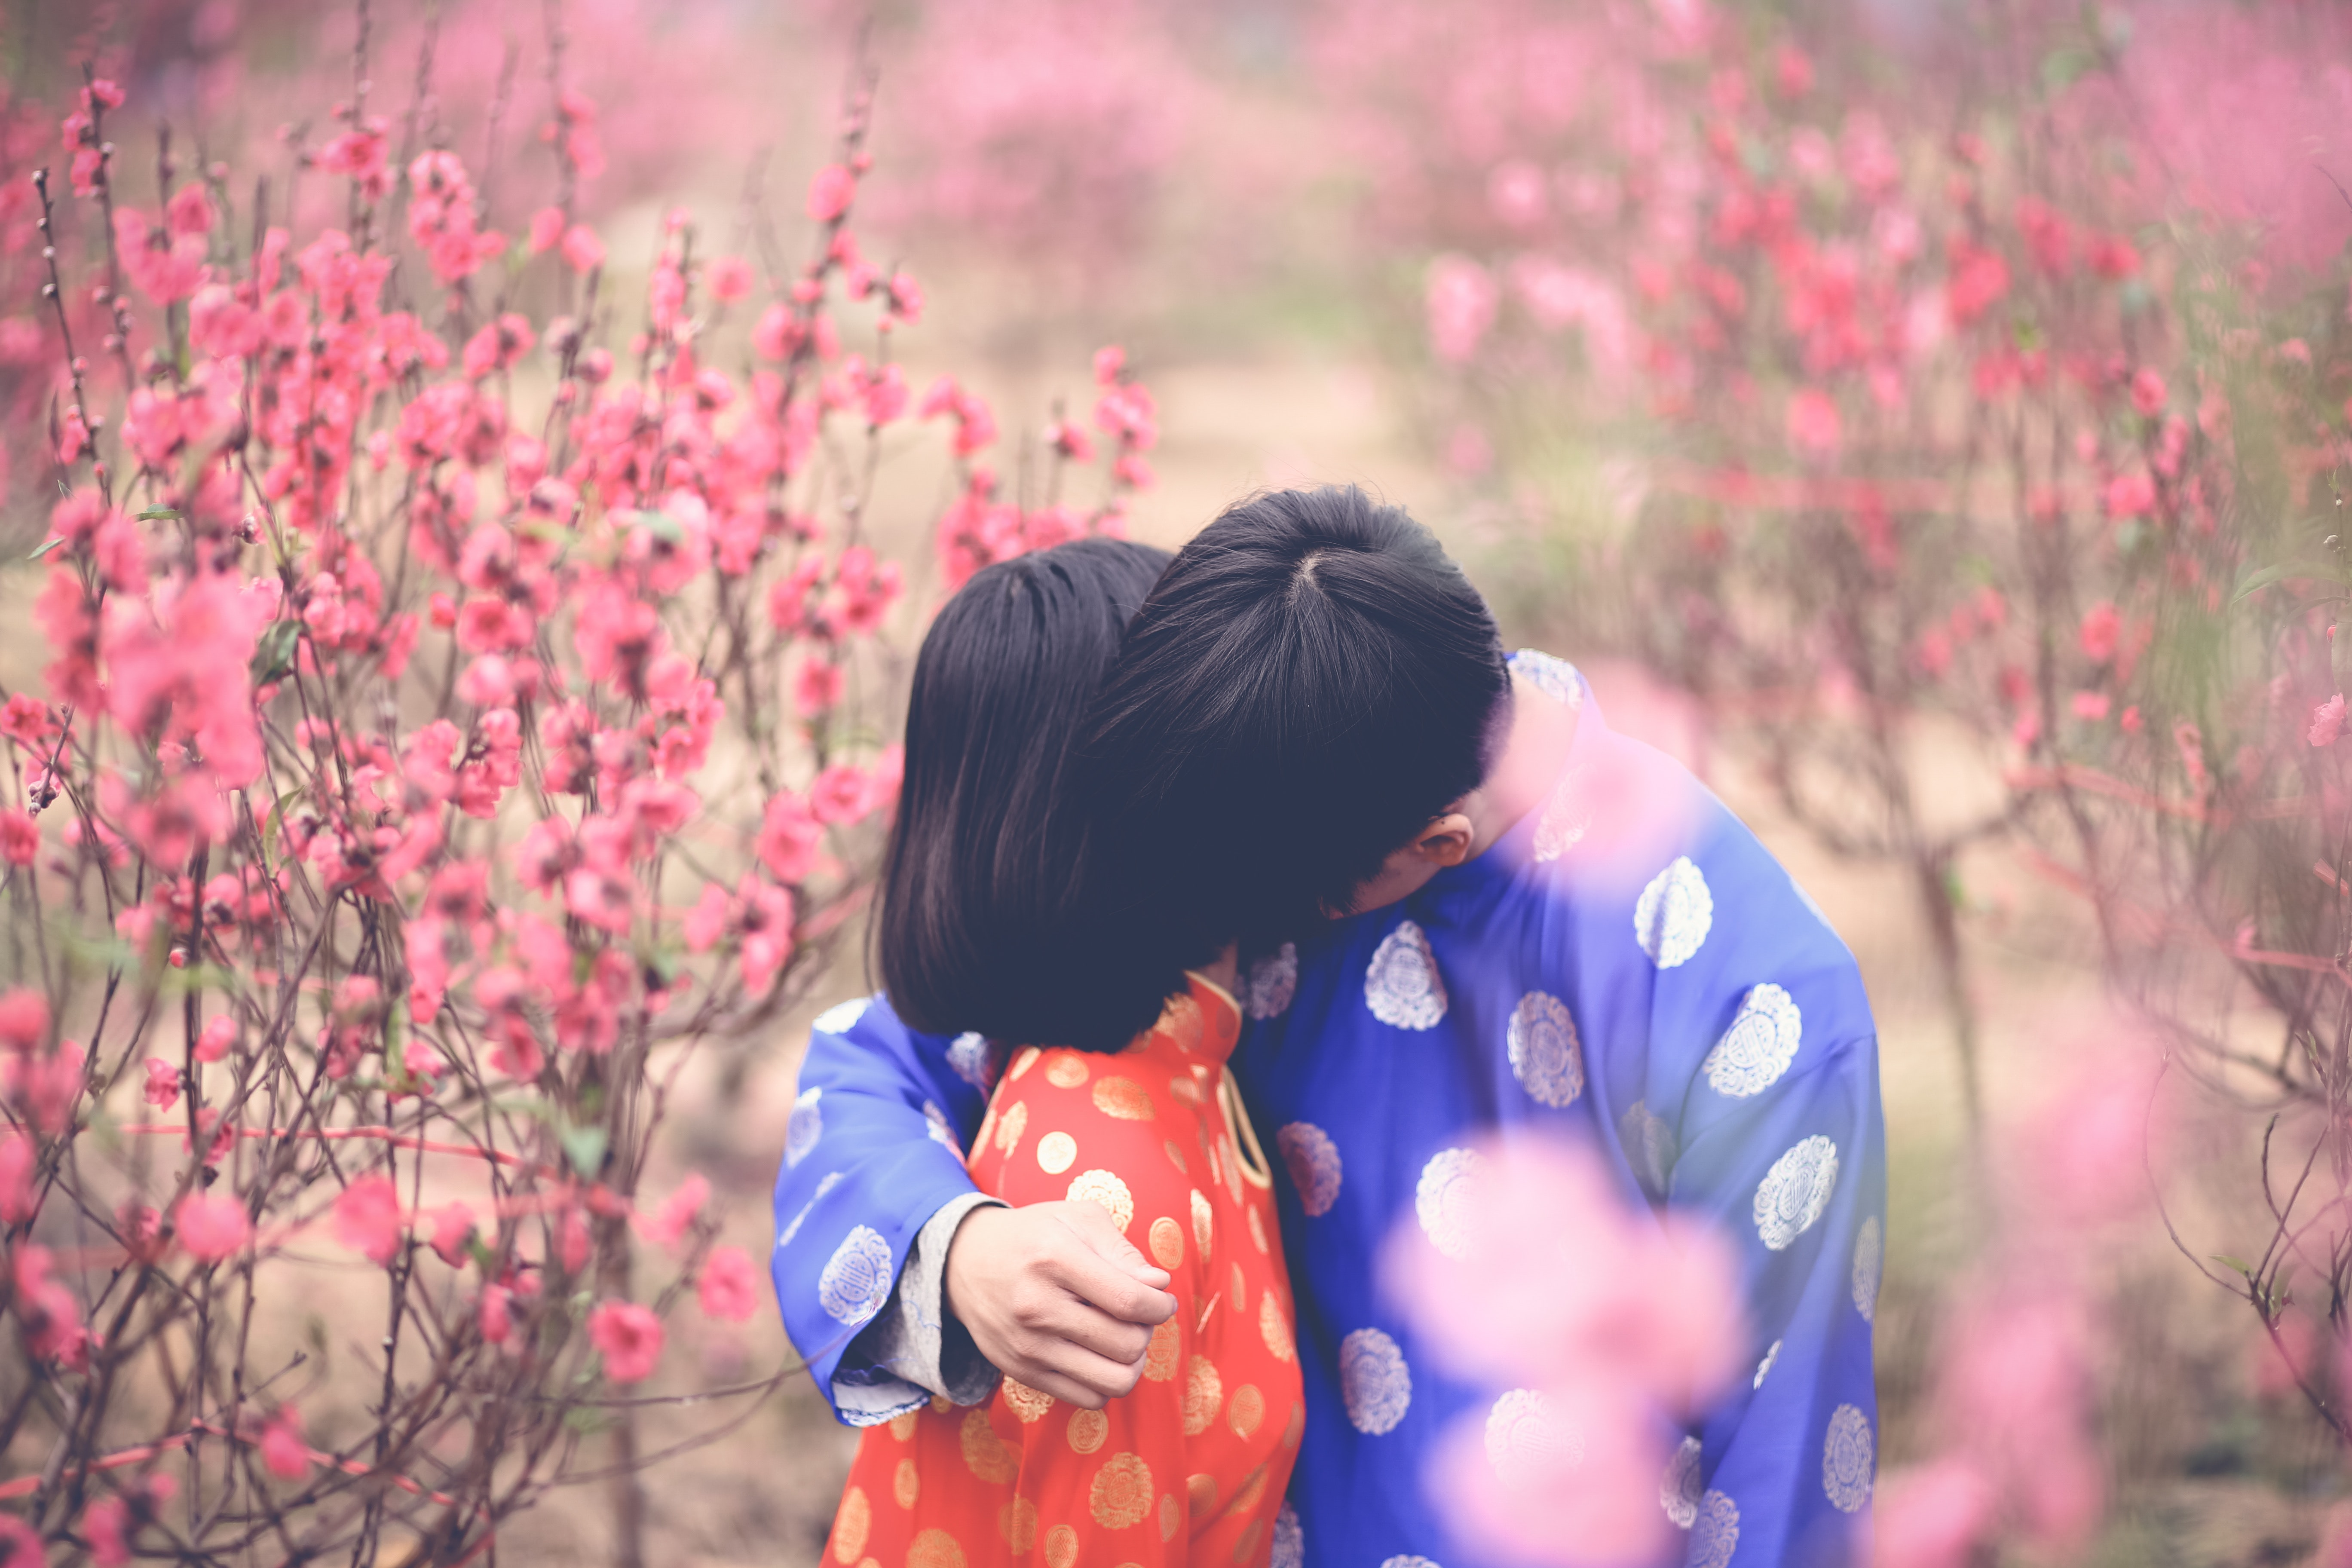 Man Hugging Girl in Orange Clothes, Blurred background, Park, Young, Woman, HQ Photo